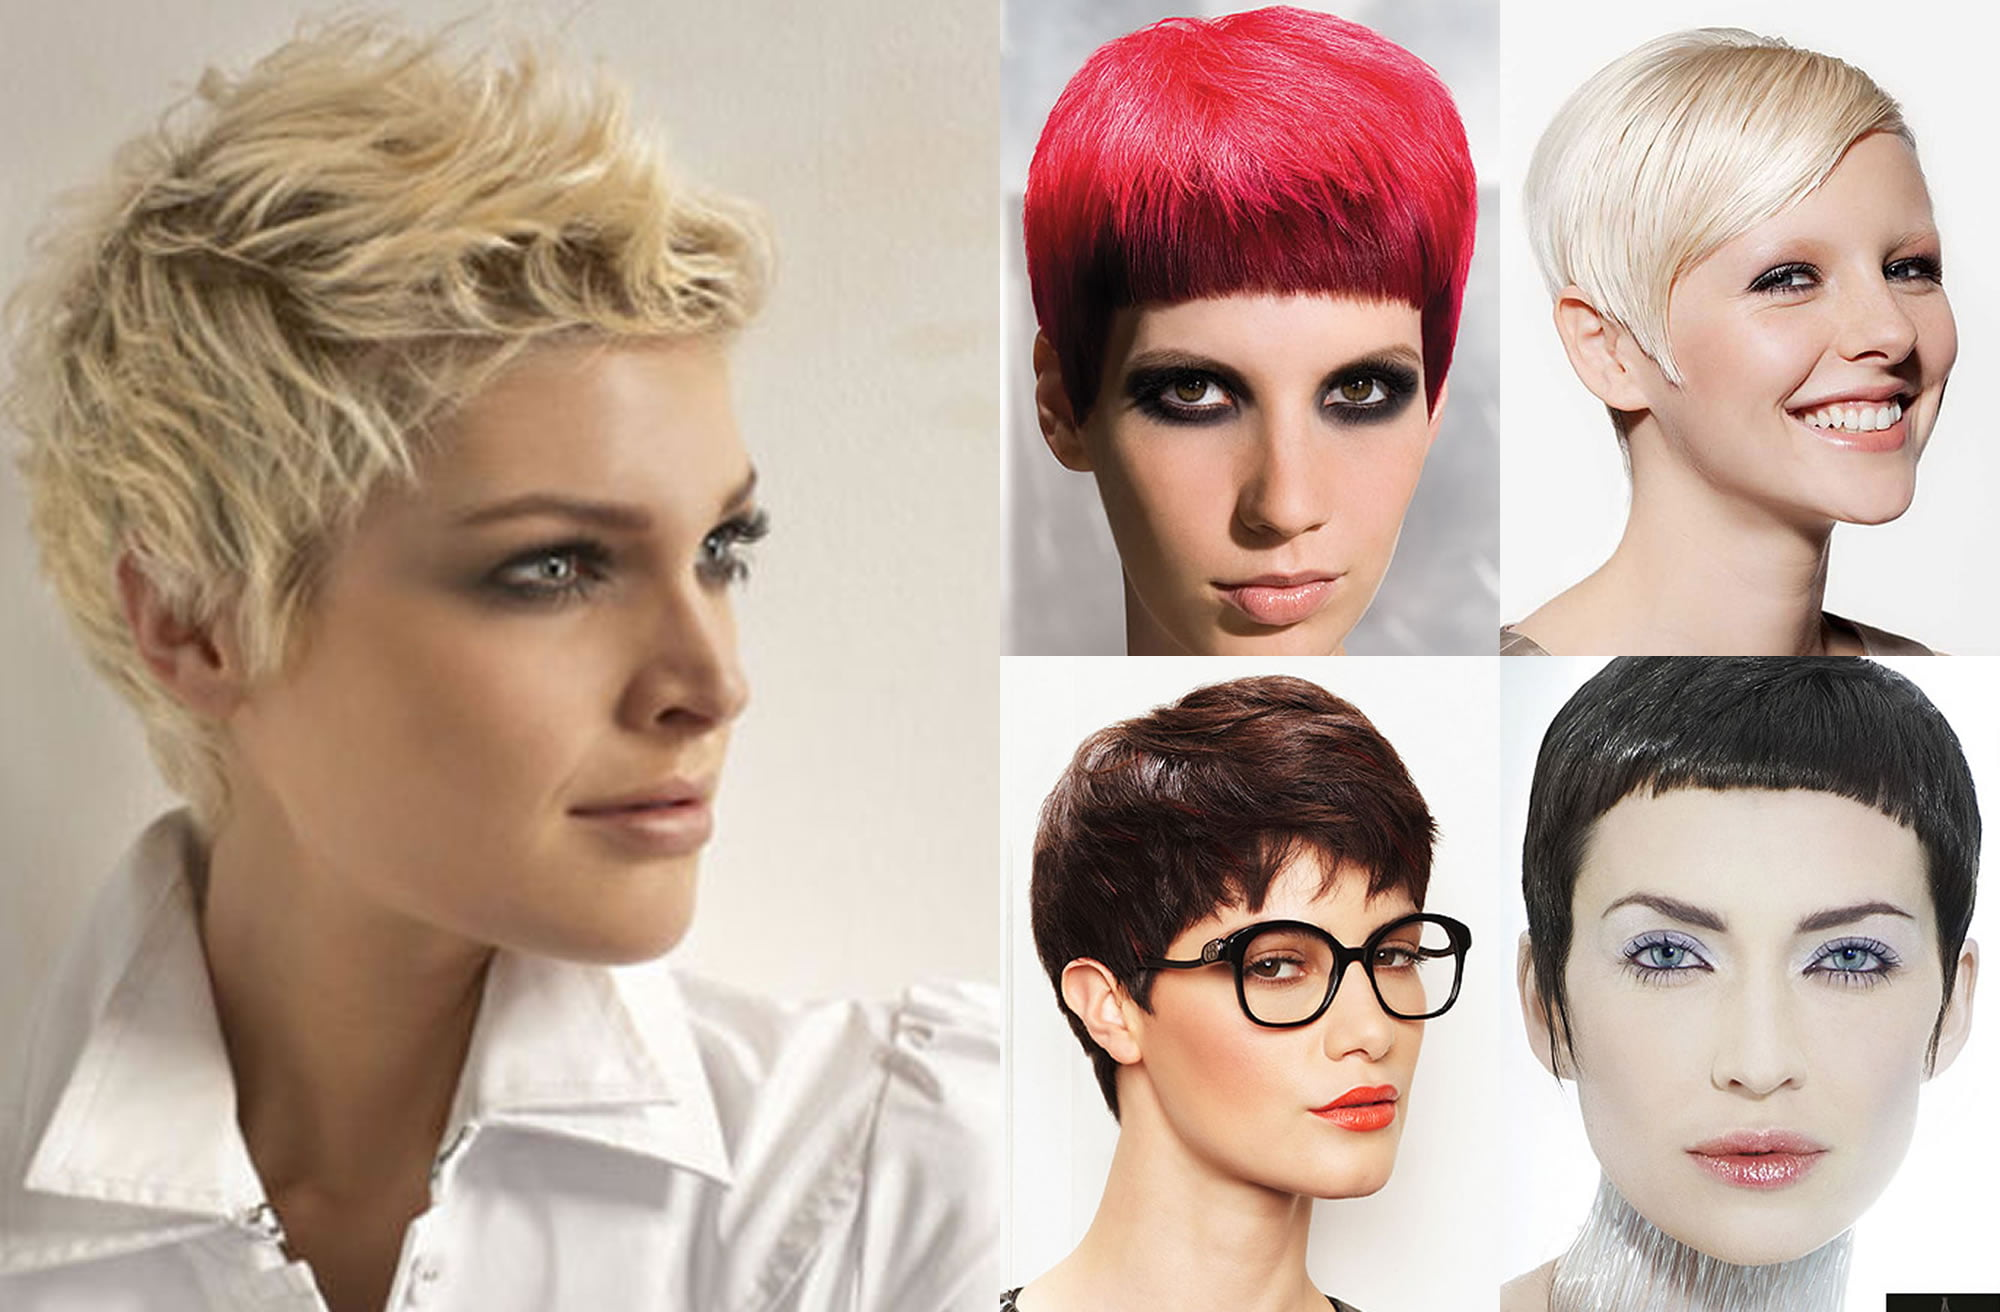 Short hair colors | Trendy short and pixie haircut ideas for 2018-2019 - HAIRSTYLES